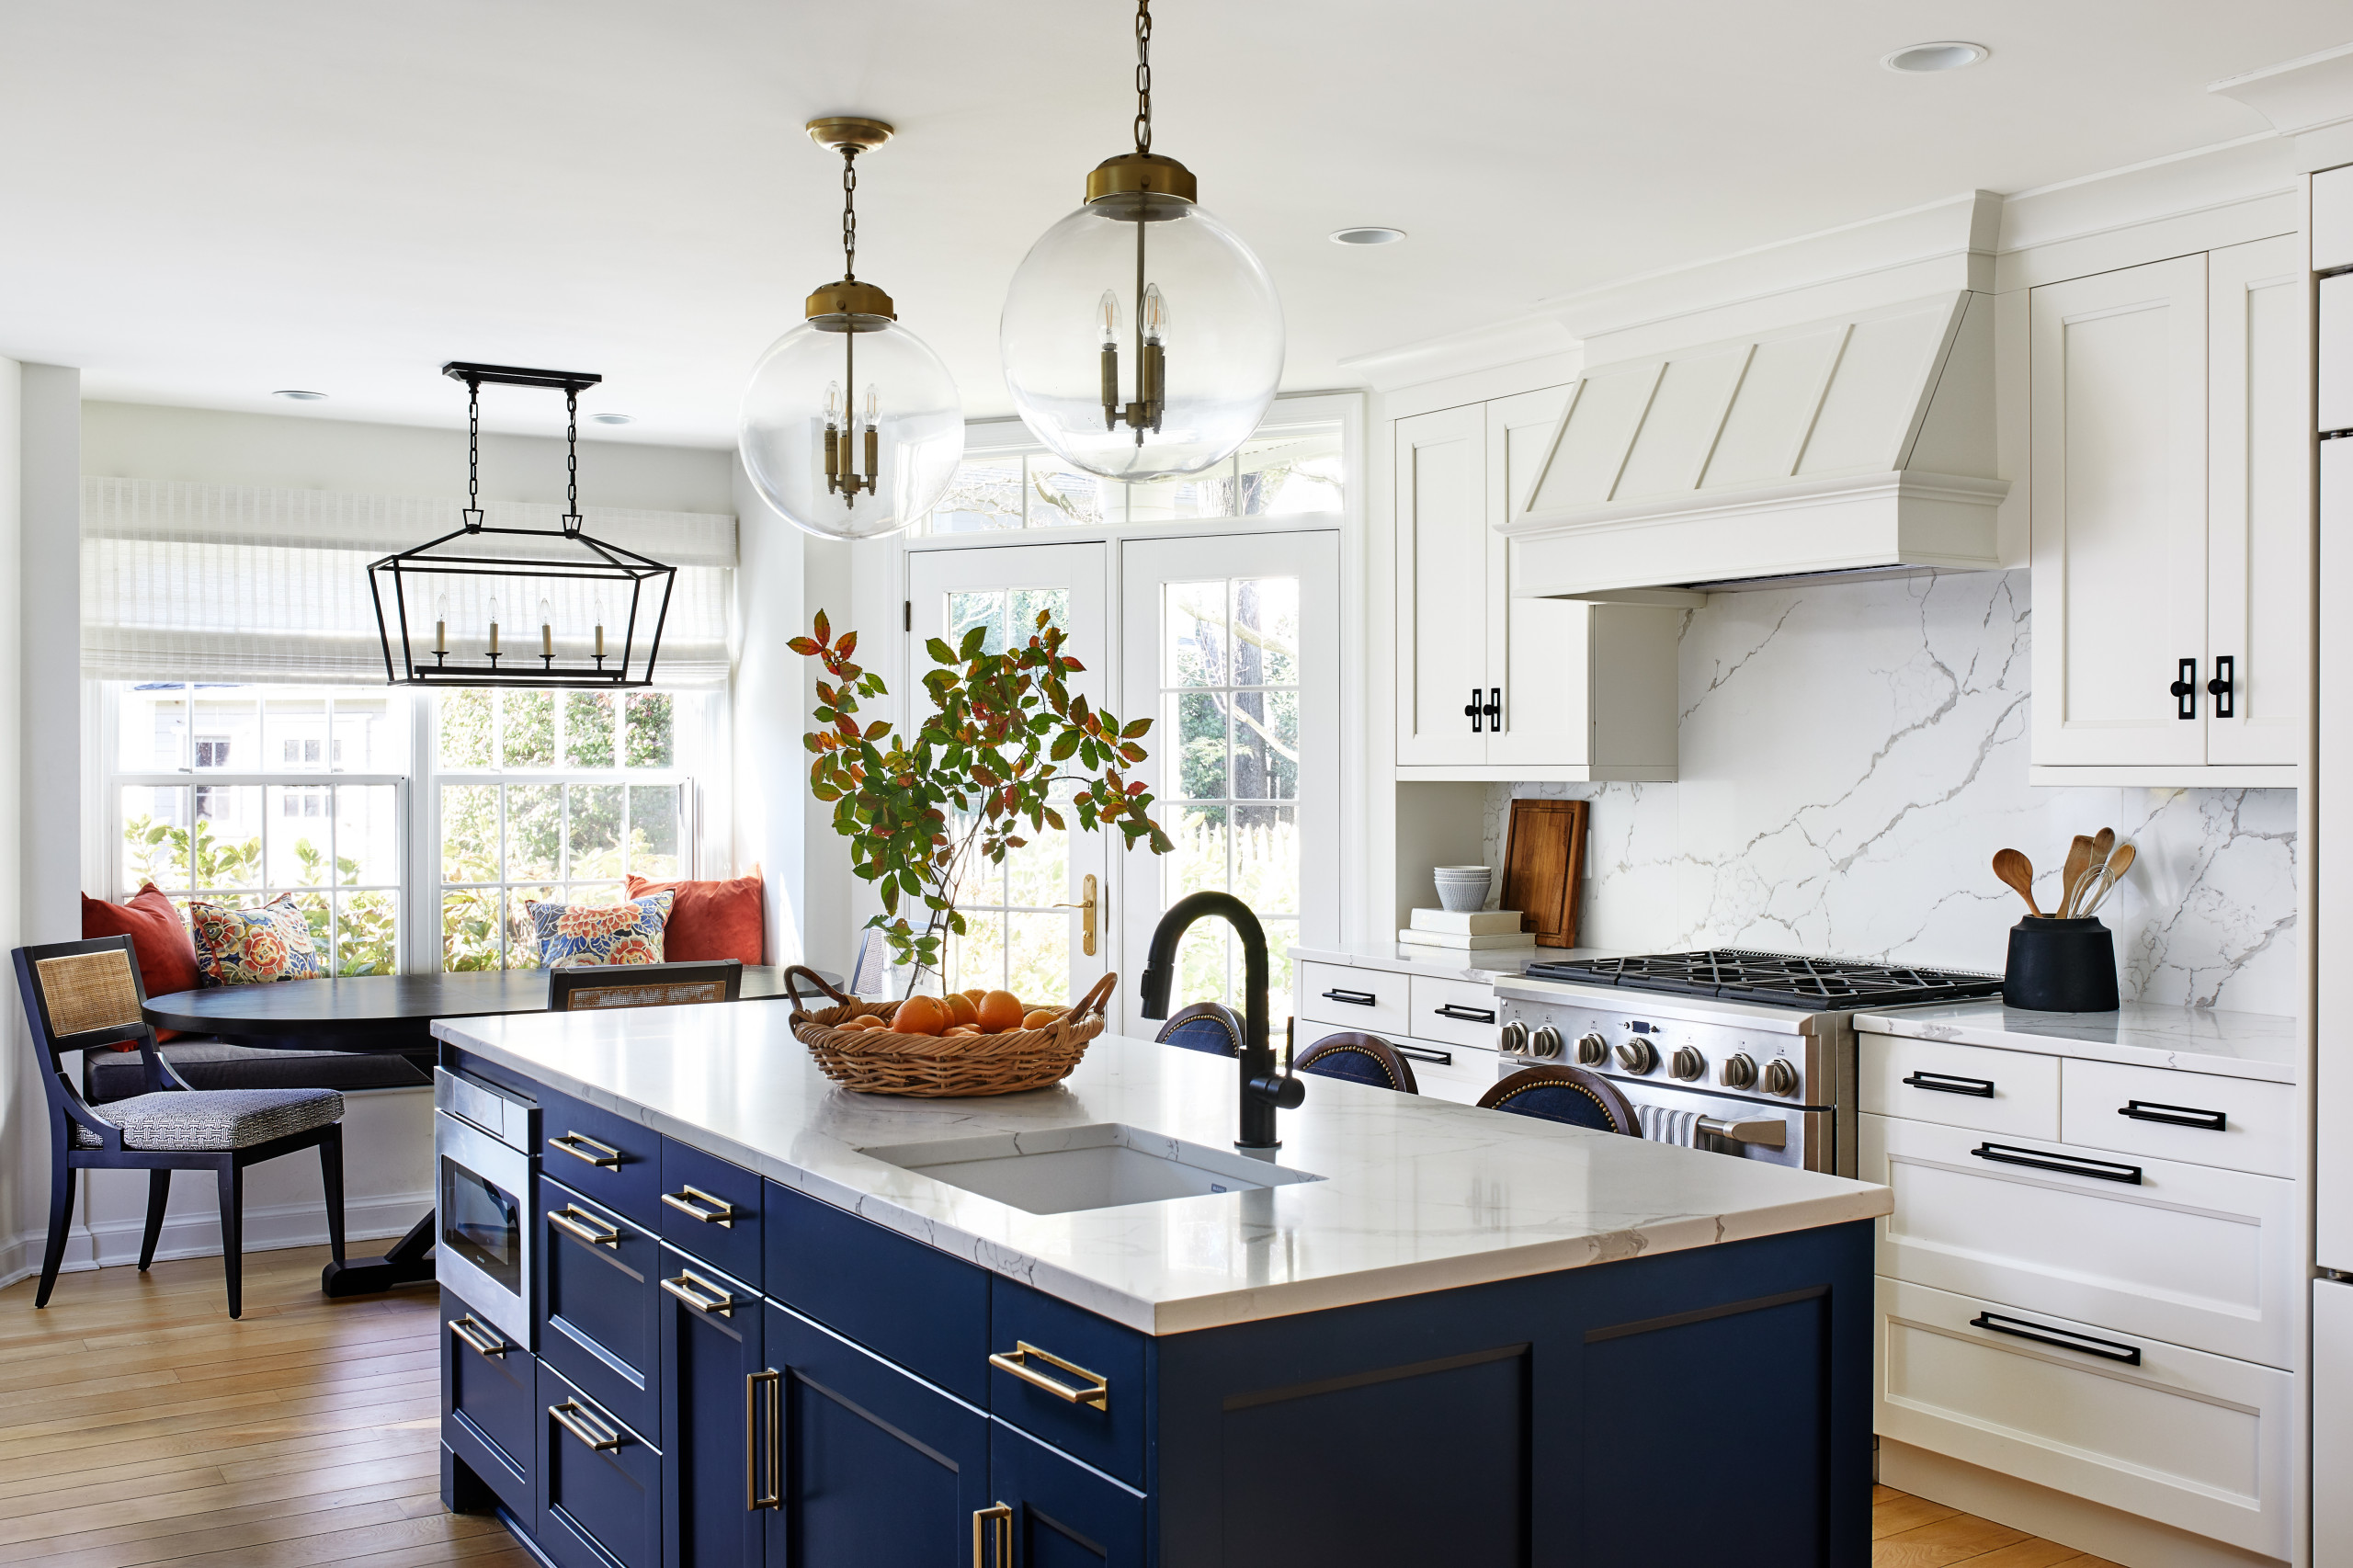 75 Beautiful Traditional Kitchen Pictures Ideas July 2021 Houzz